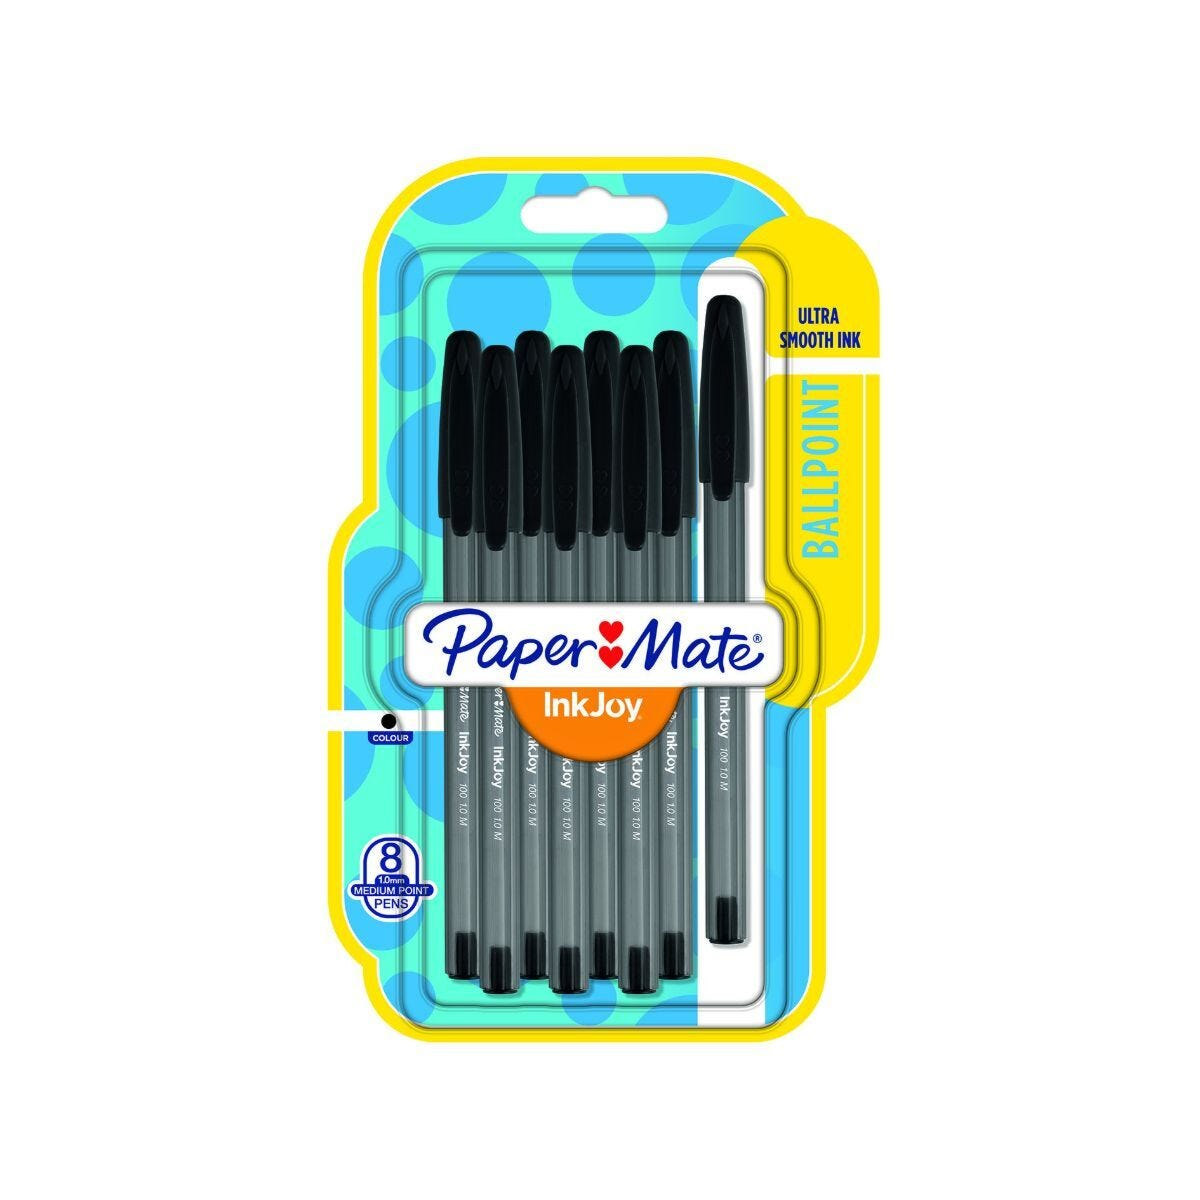 Paper Mate Inkjoy 100 Ball pen Pack of 8 Black